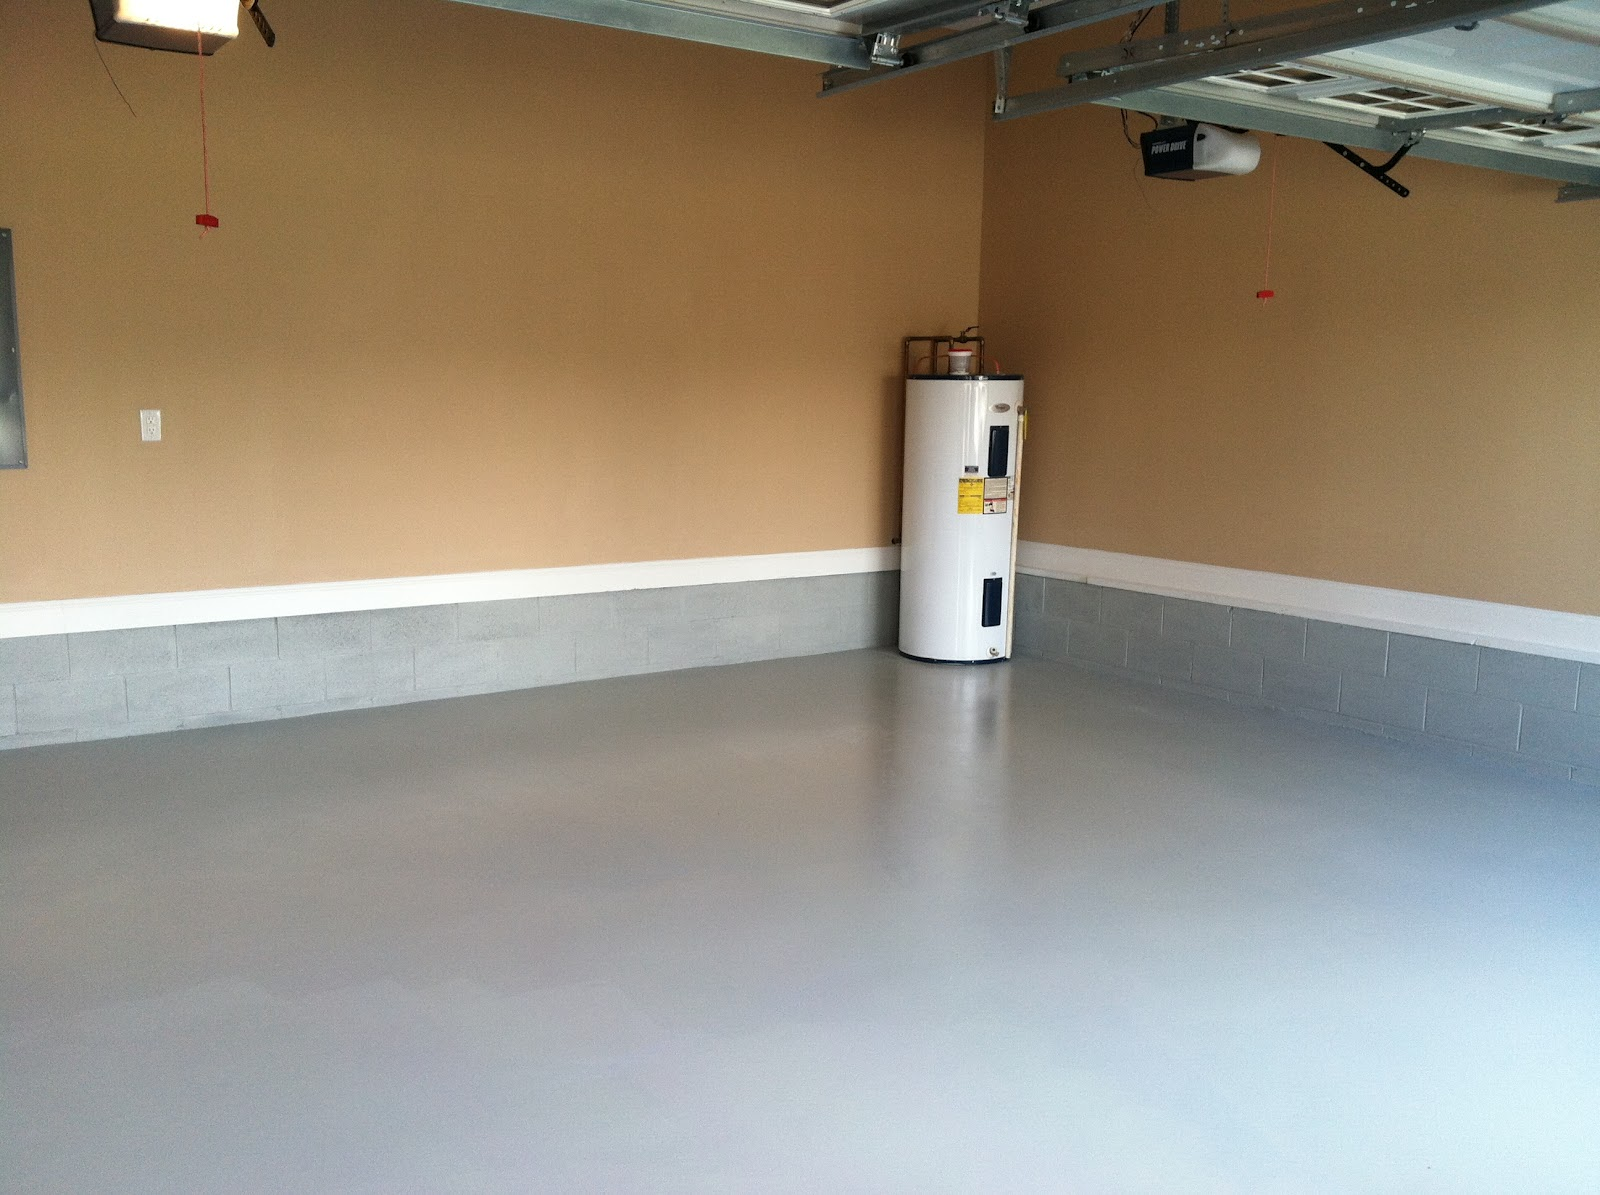 also kenosha of ideas for shocking and trend inspiration best paint files color wall walls painting garage image